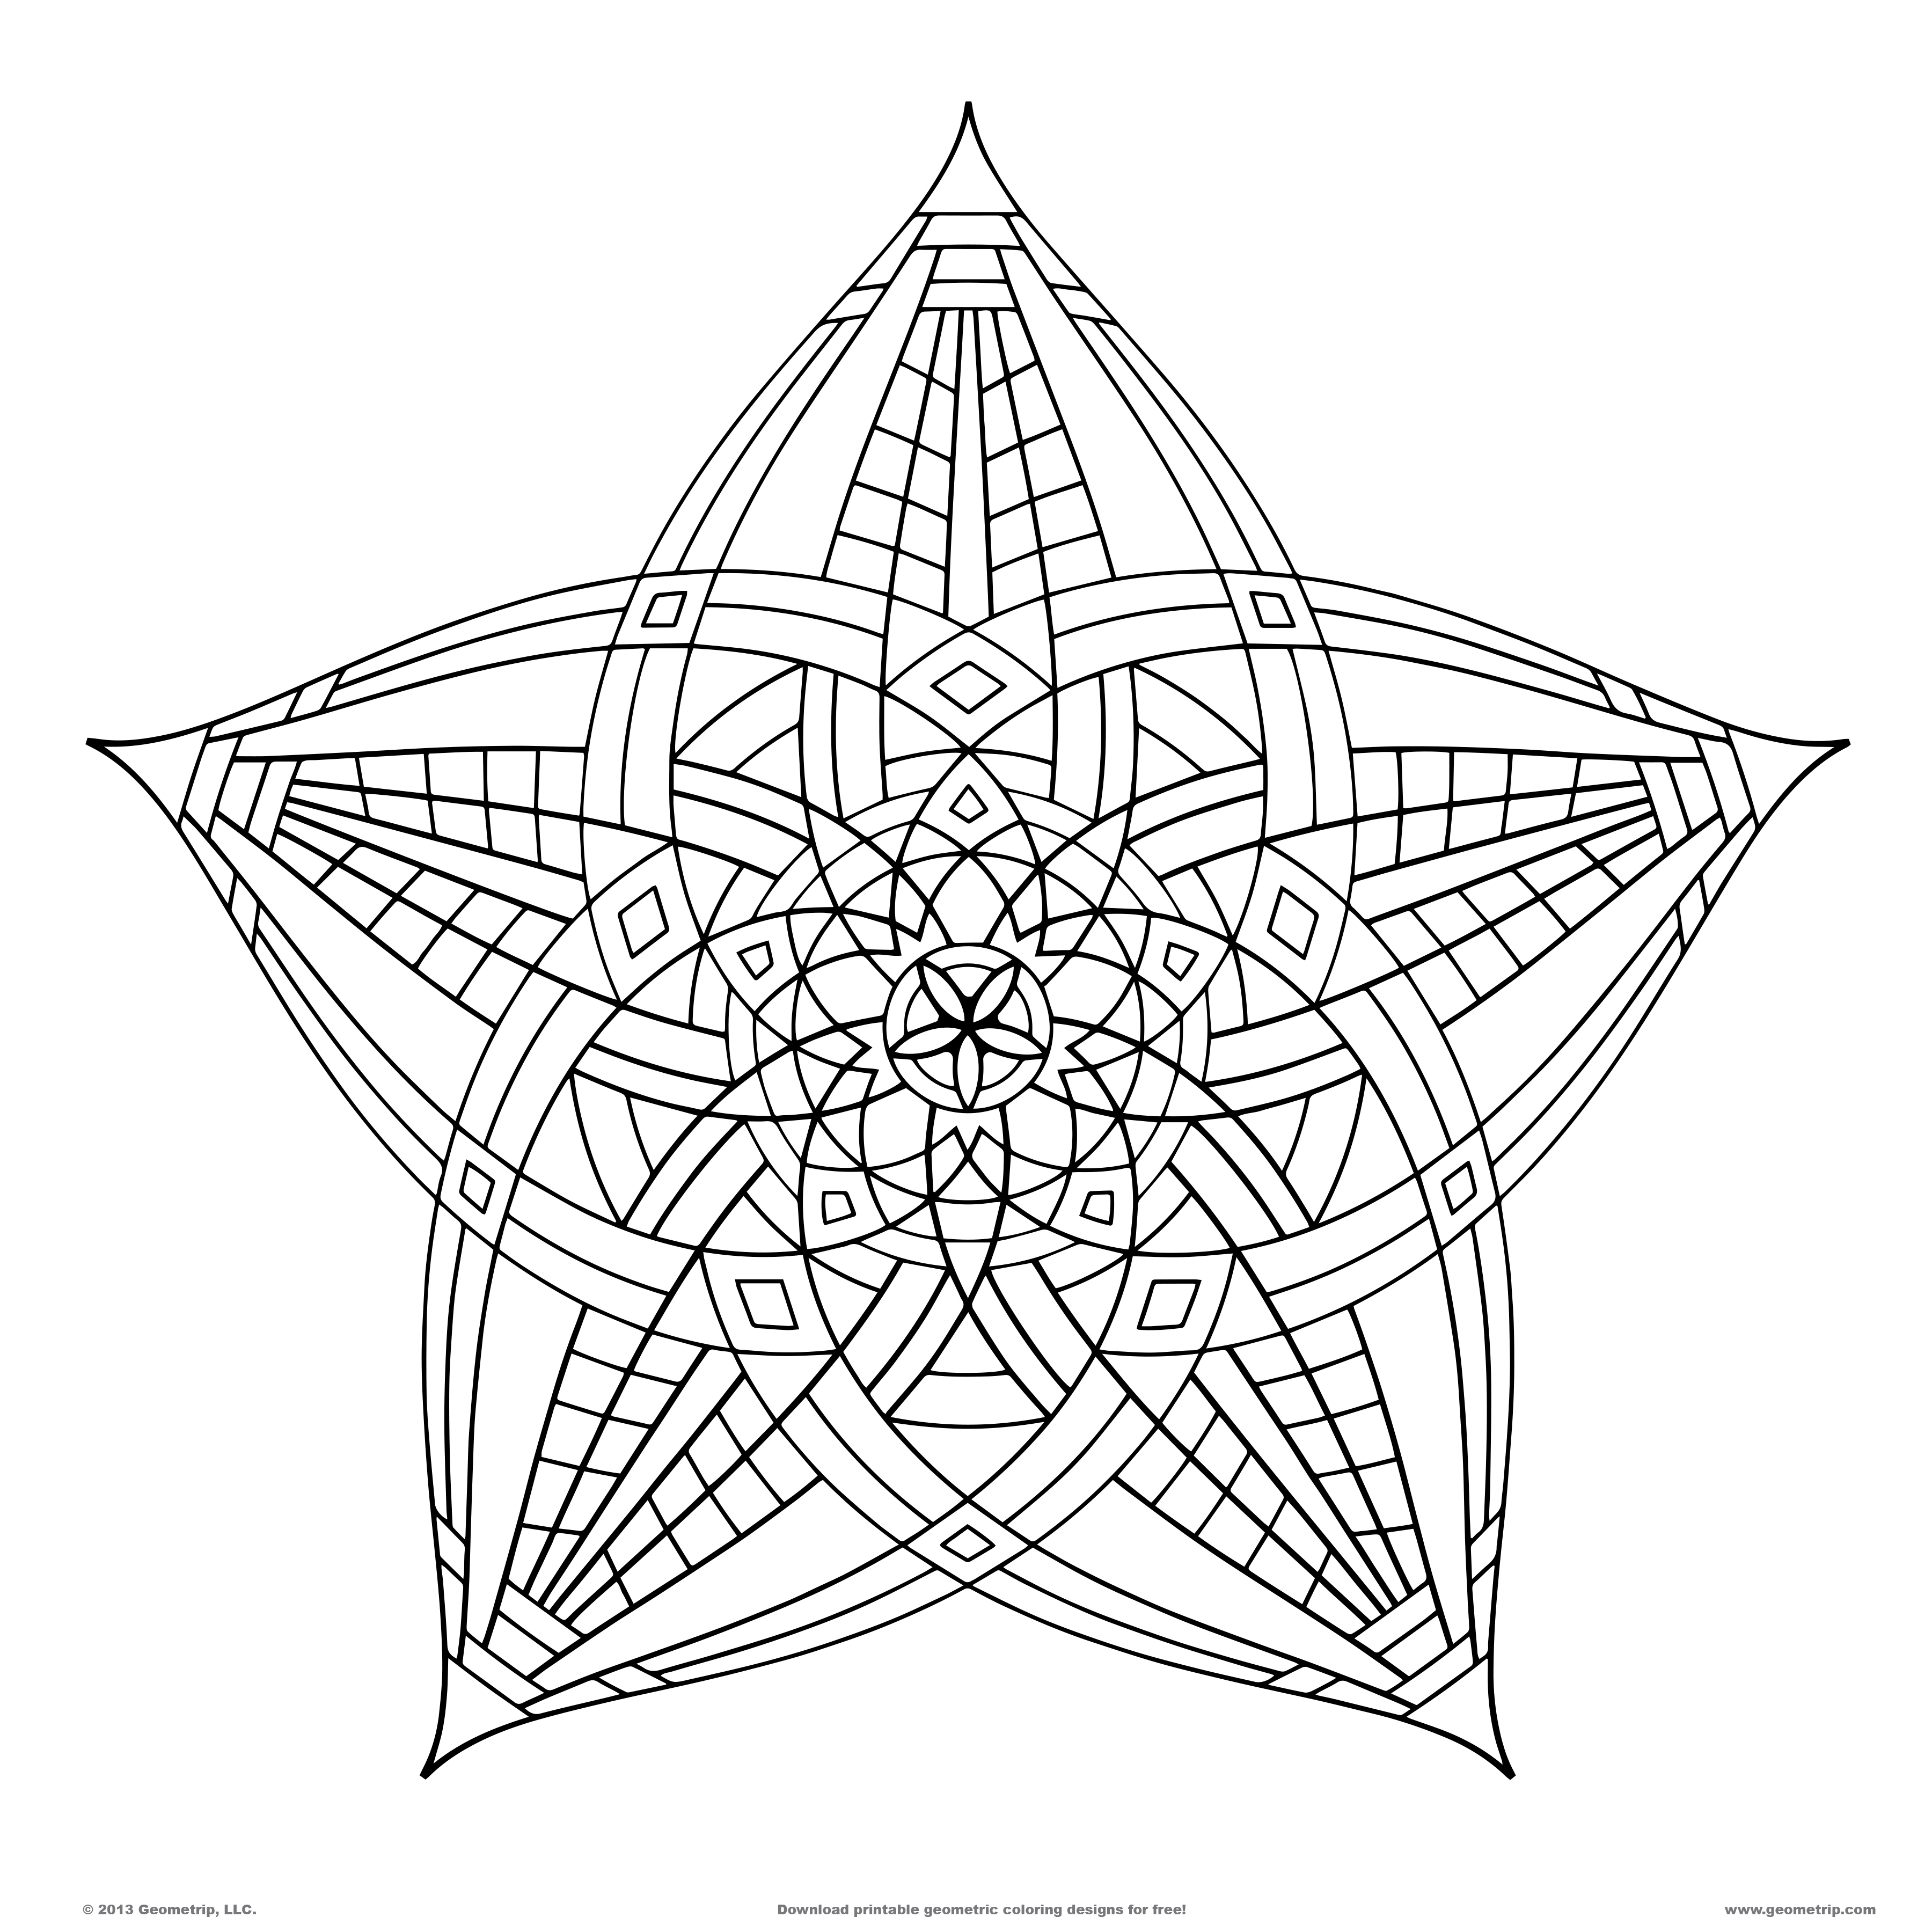 coloring pages cool designs 16 cool coloring pages of designs images cool geometric coloring pages cool designs